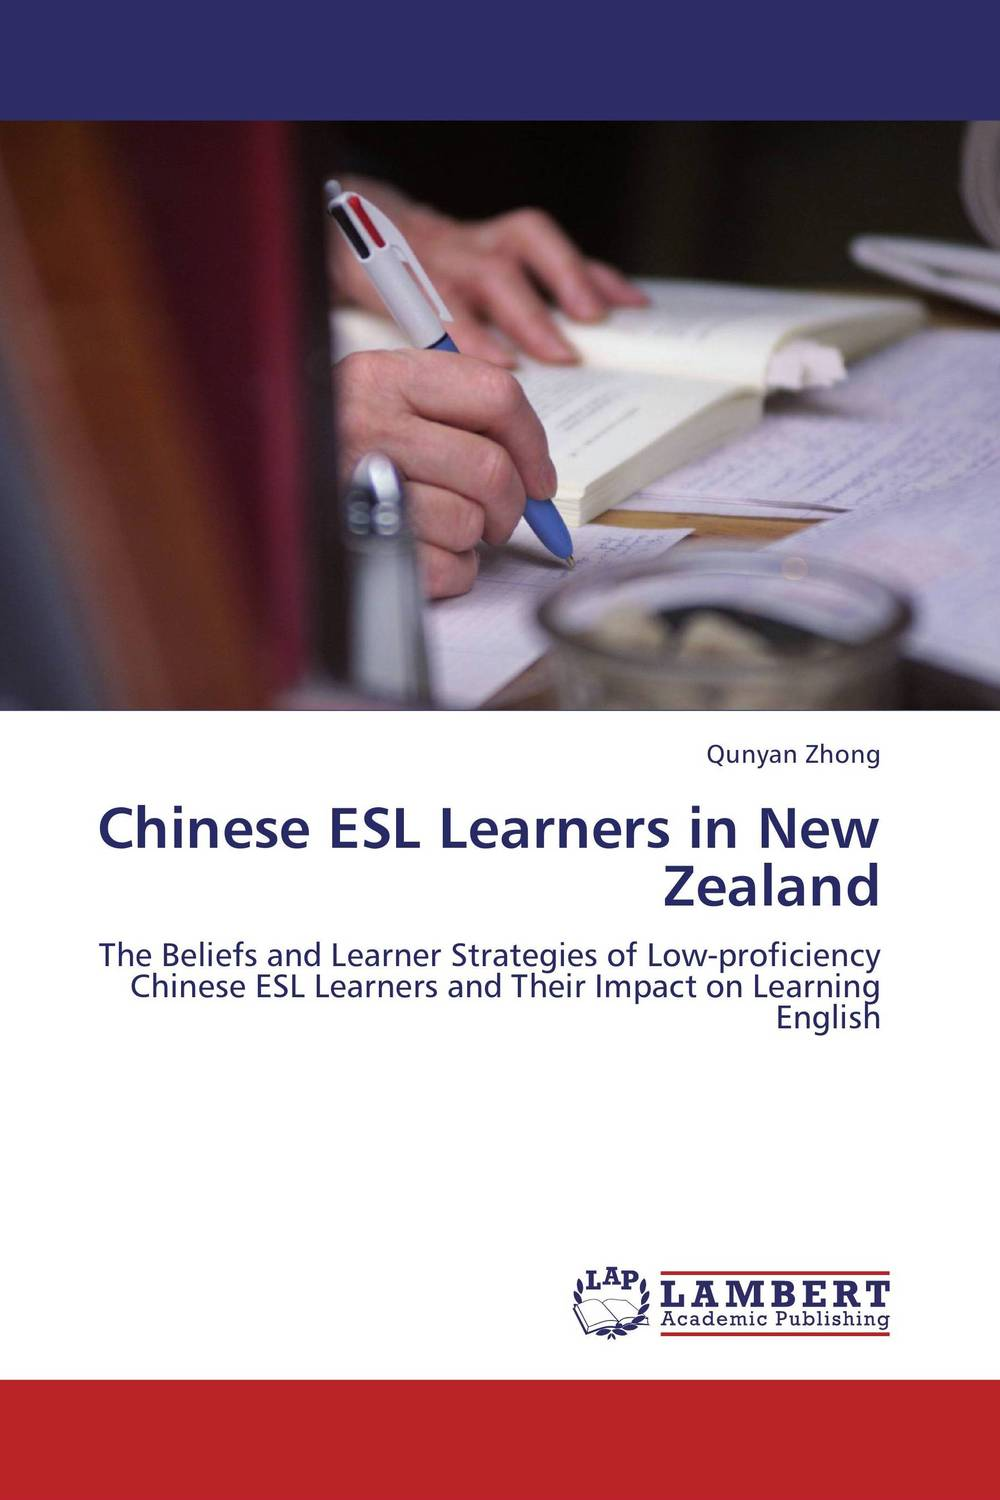 Chinese ESL Learners in New Zealand flowers in the cloud watching the movie and learning chinese dvd